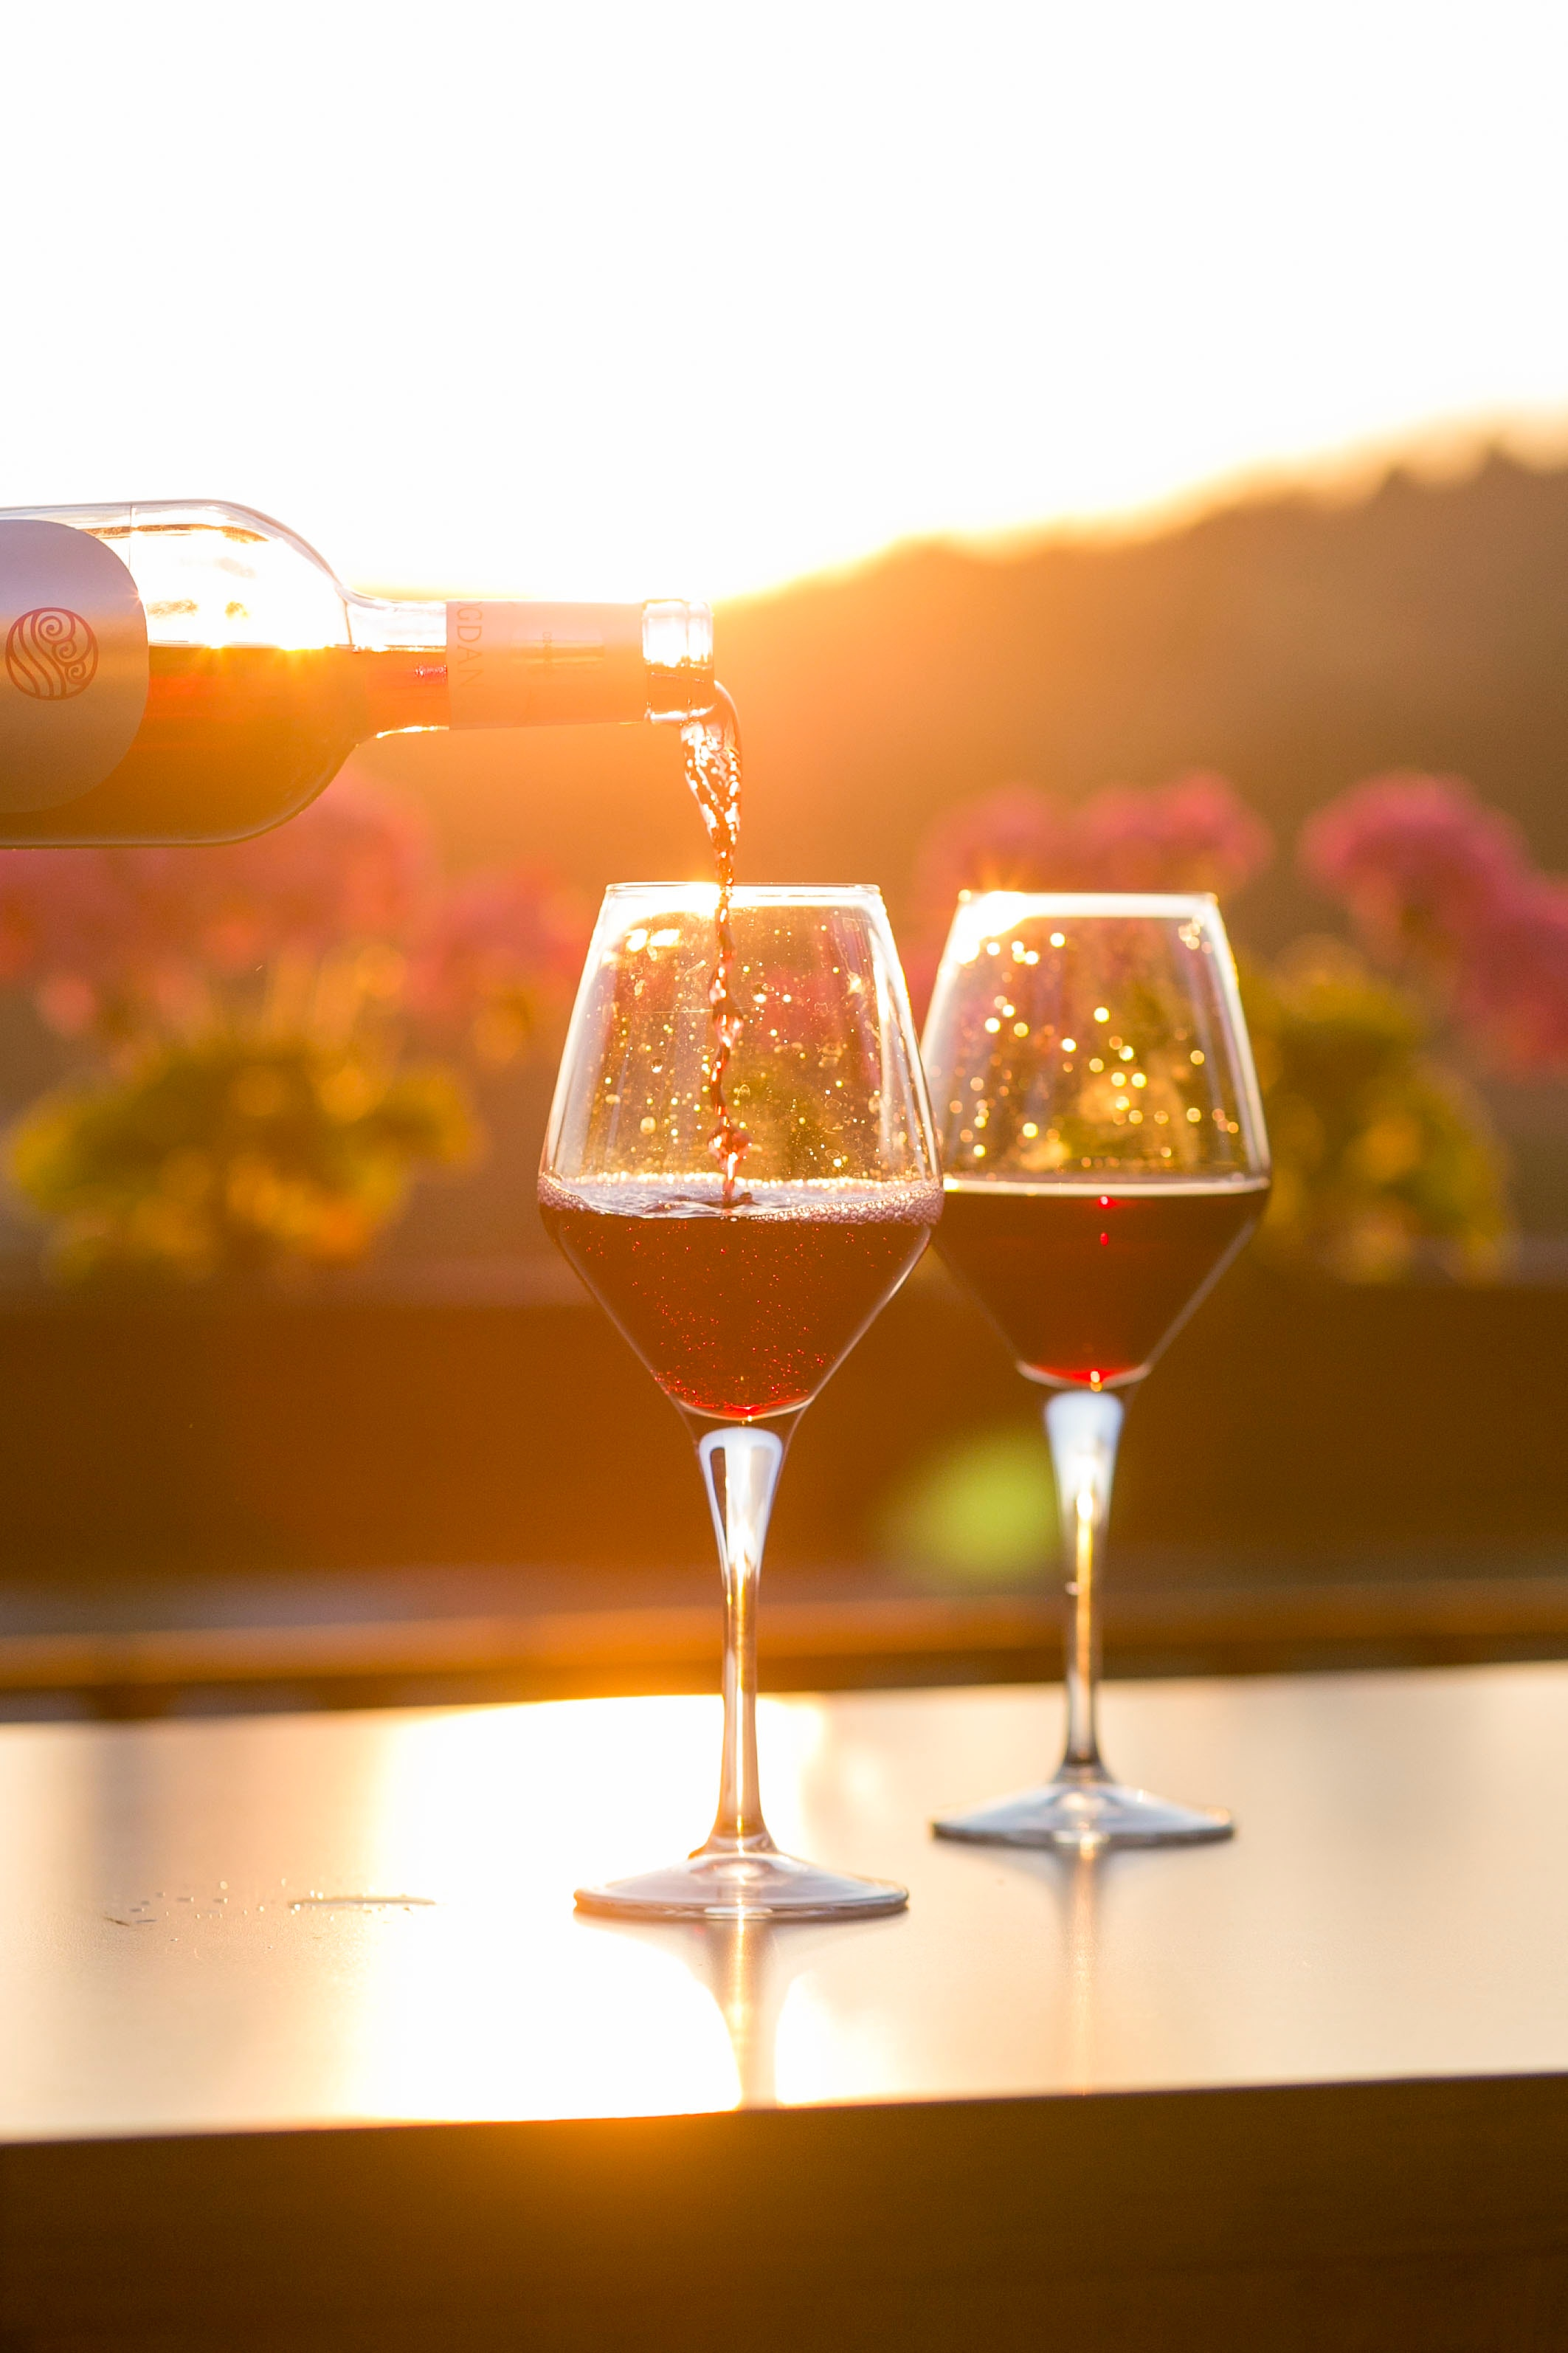 Vines and Sunshine: Why Solar Energy is the Perfect Wine Pairing